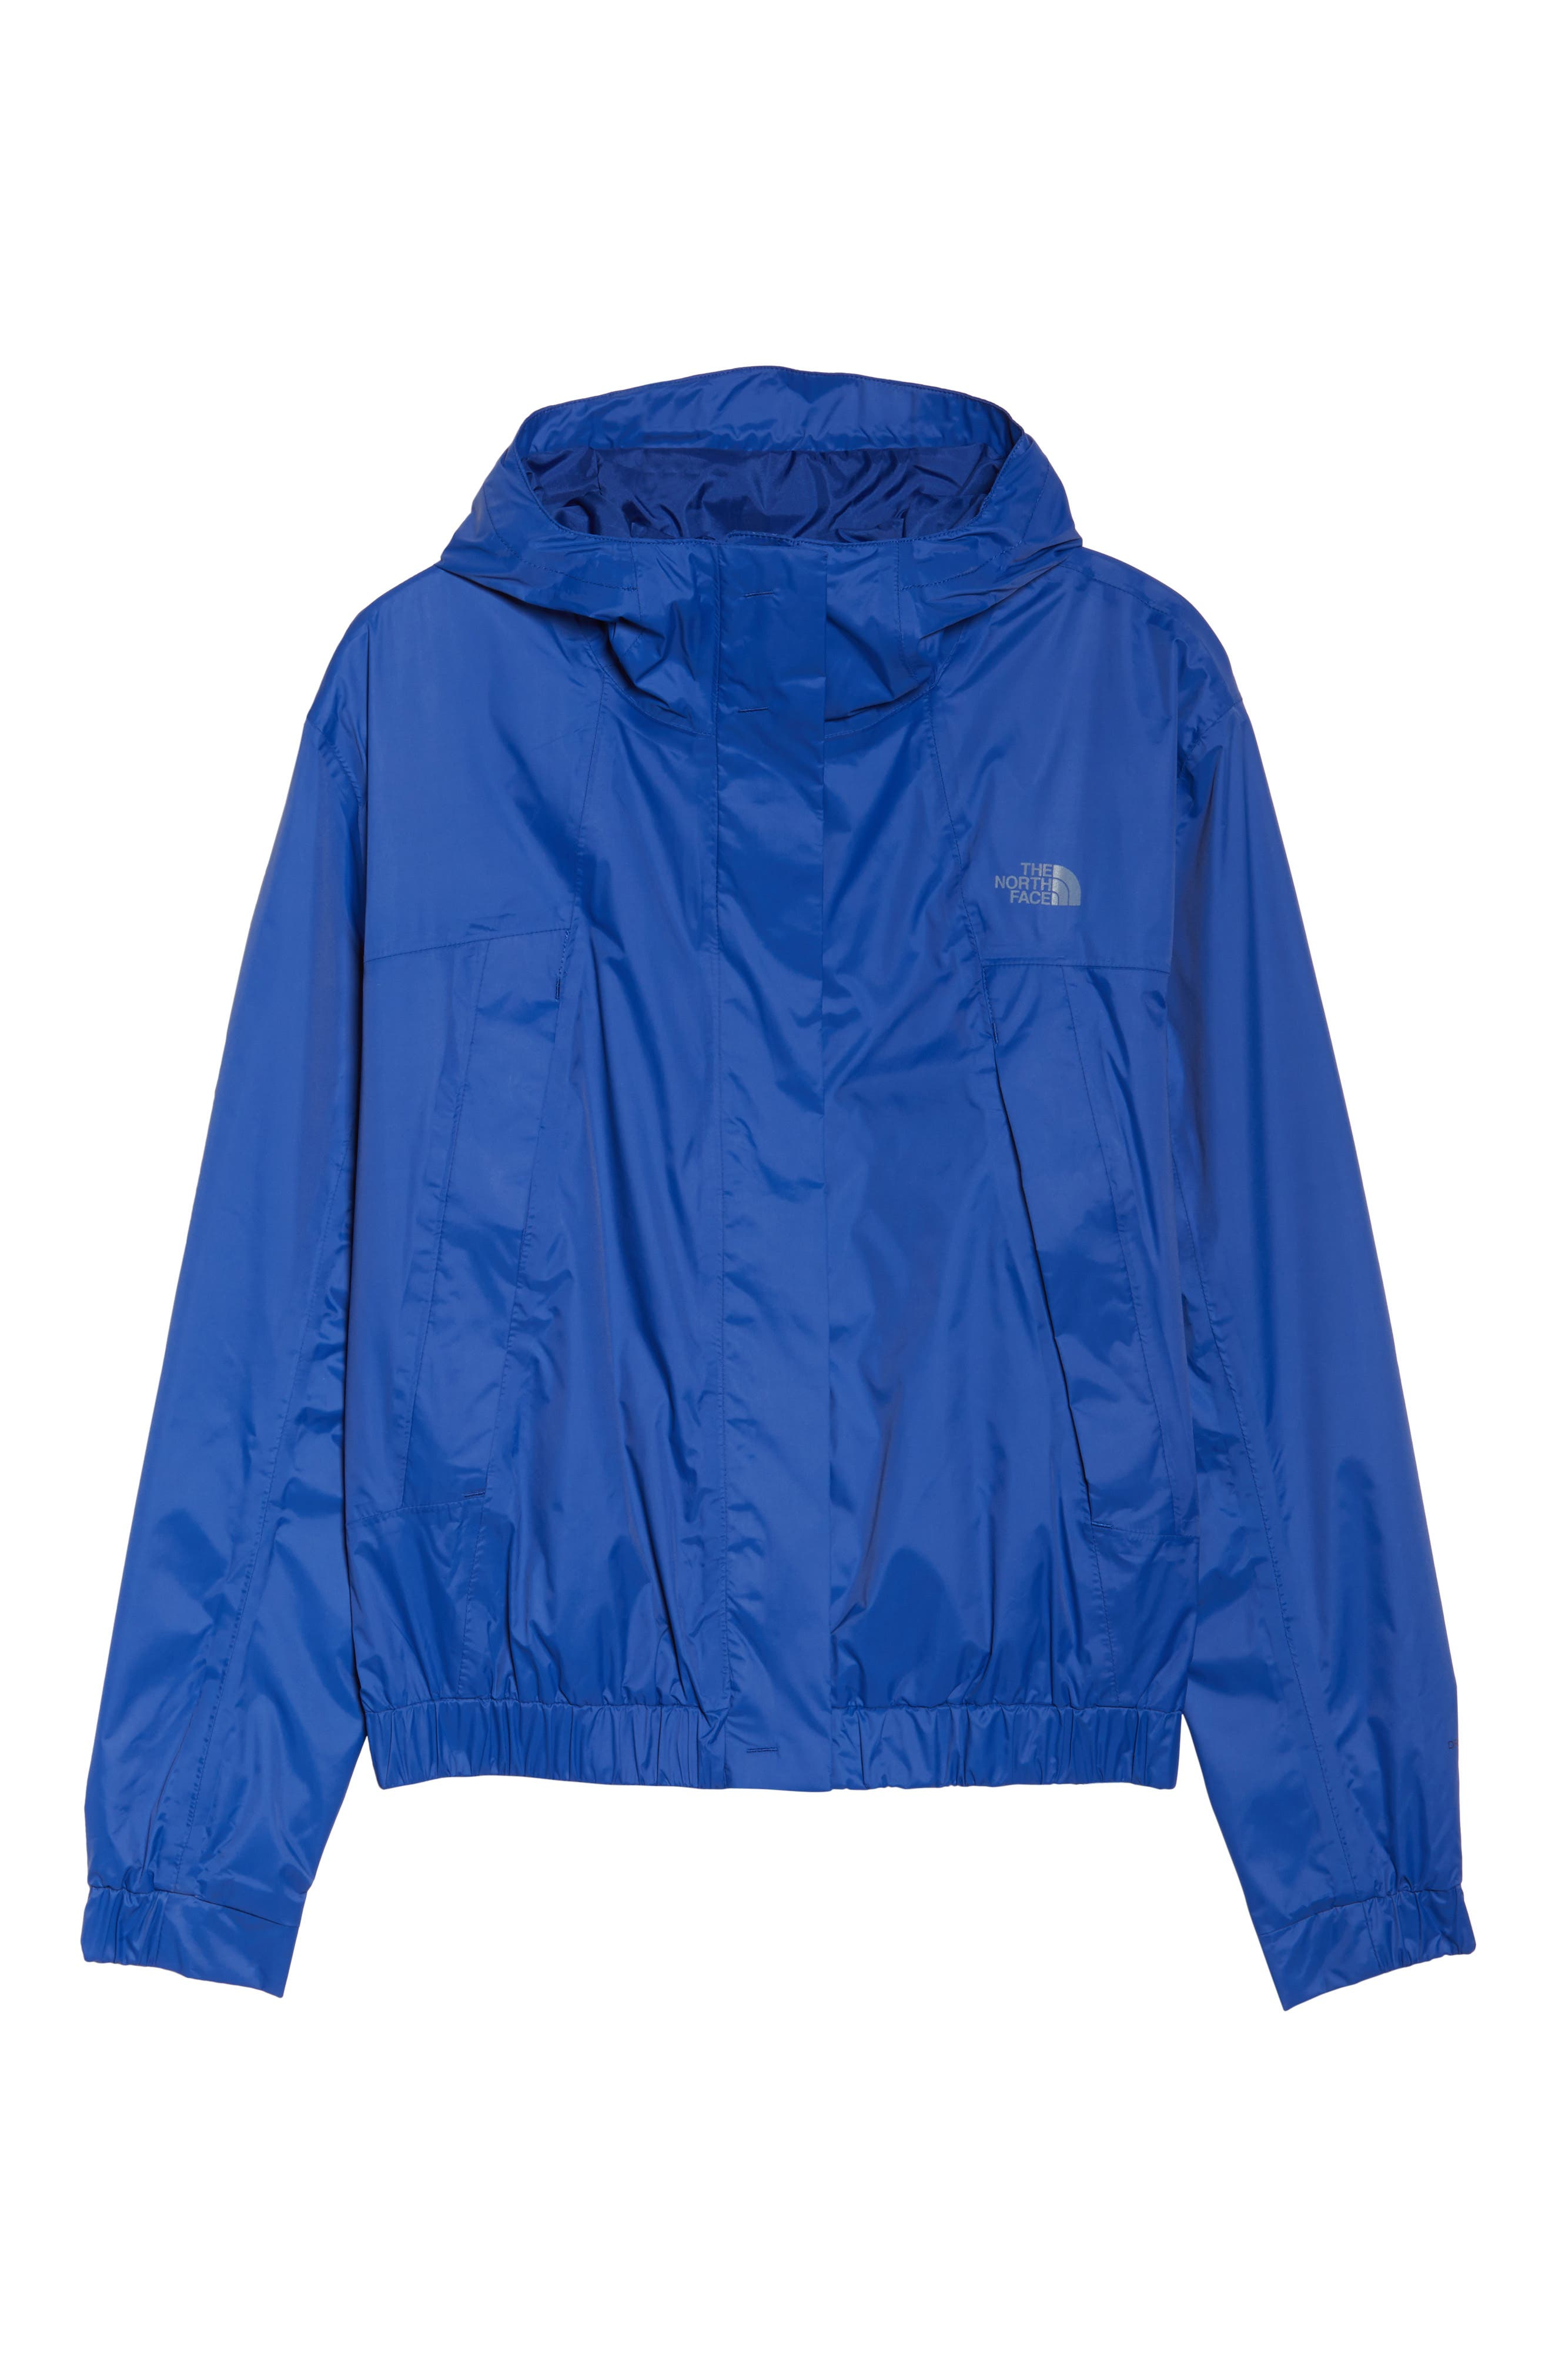 Precita Rain Jacket,                             Alternate thumbnail 3, color,                             Sodalite Blue